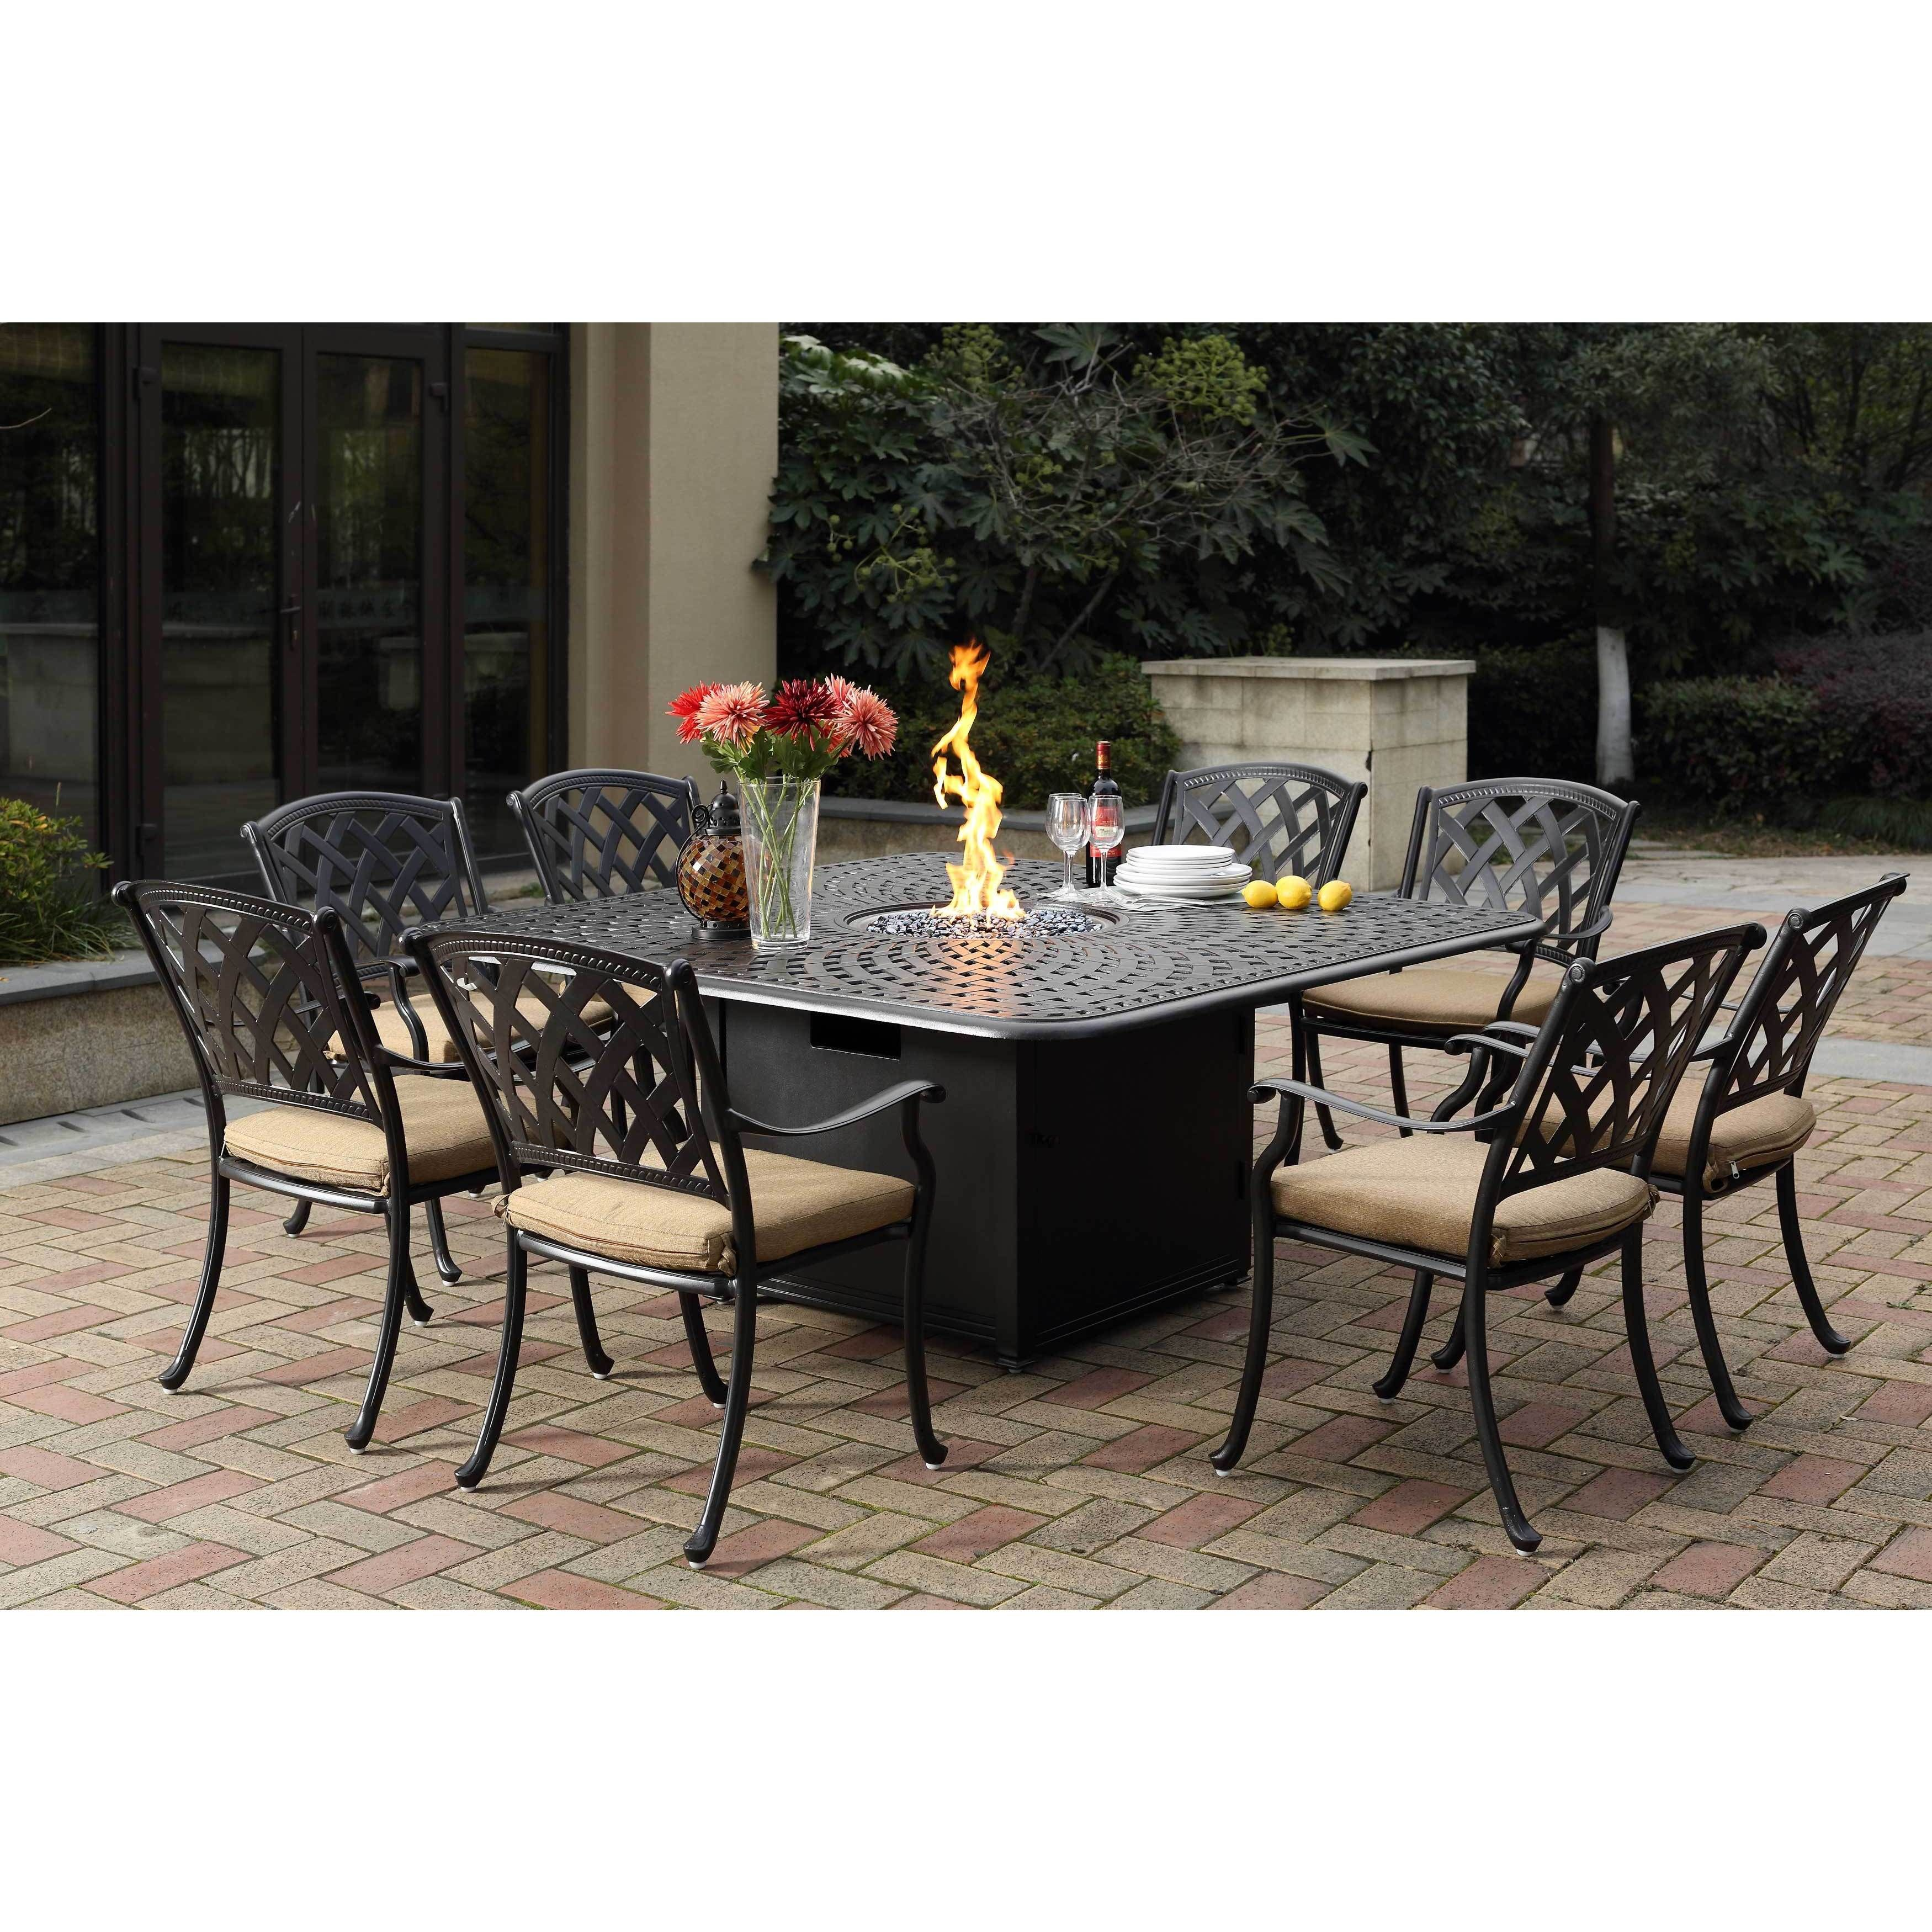 darlee ocean view cast aluminum dining set with sesame seat cushions rh in pinterest com